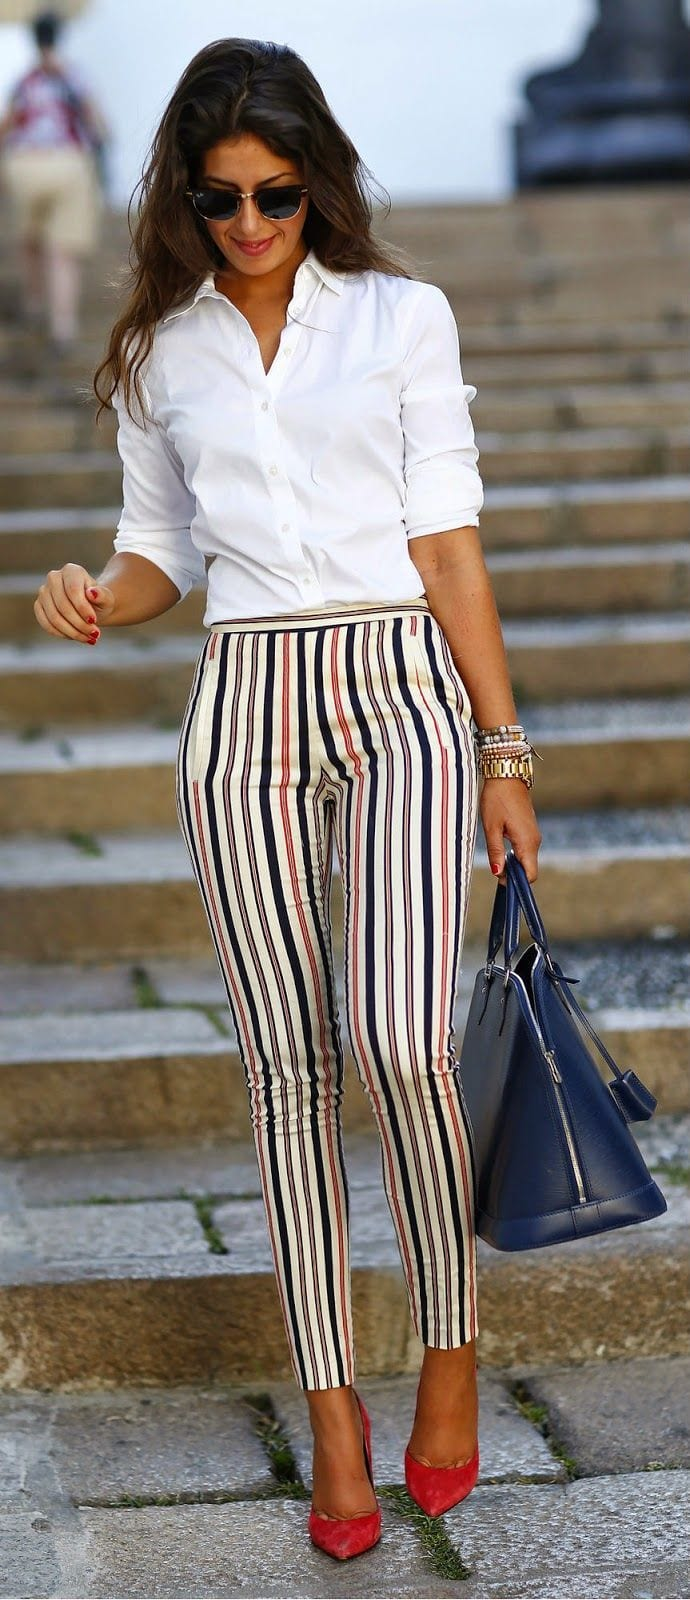 4 21 Trending Spring Street Style Outfits for Women This Year